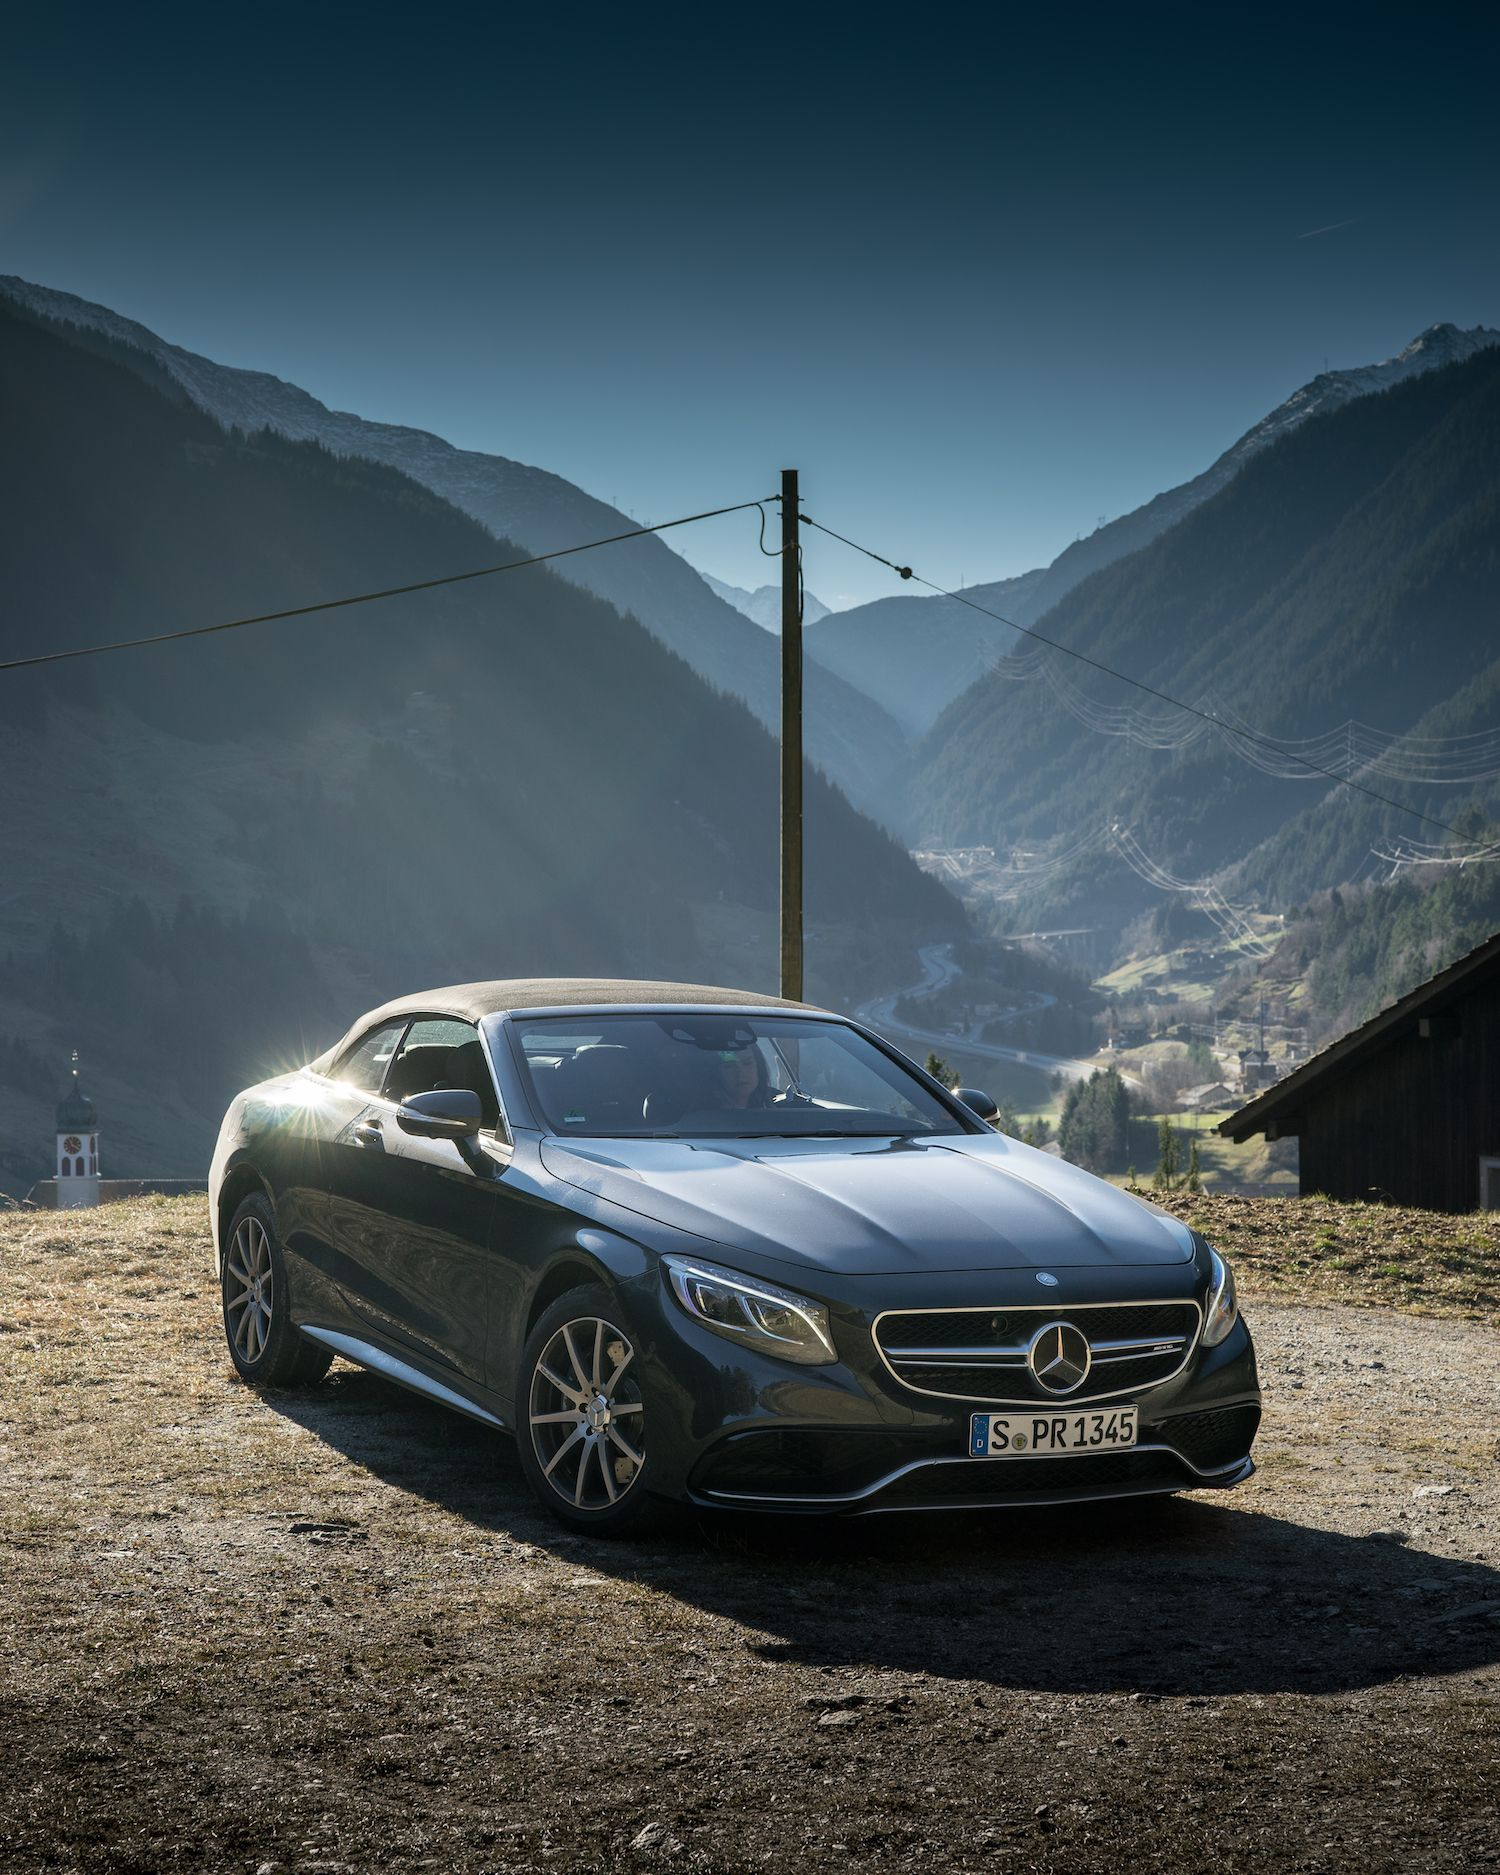 Open-top Luxury: The New Mercedes-Benz S-Class Cabriolet